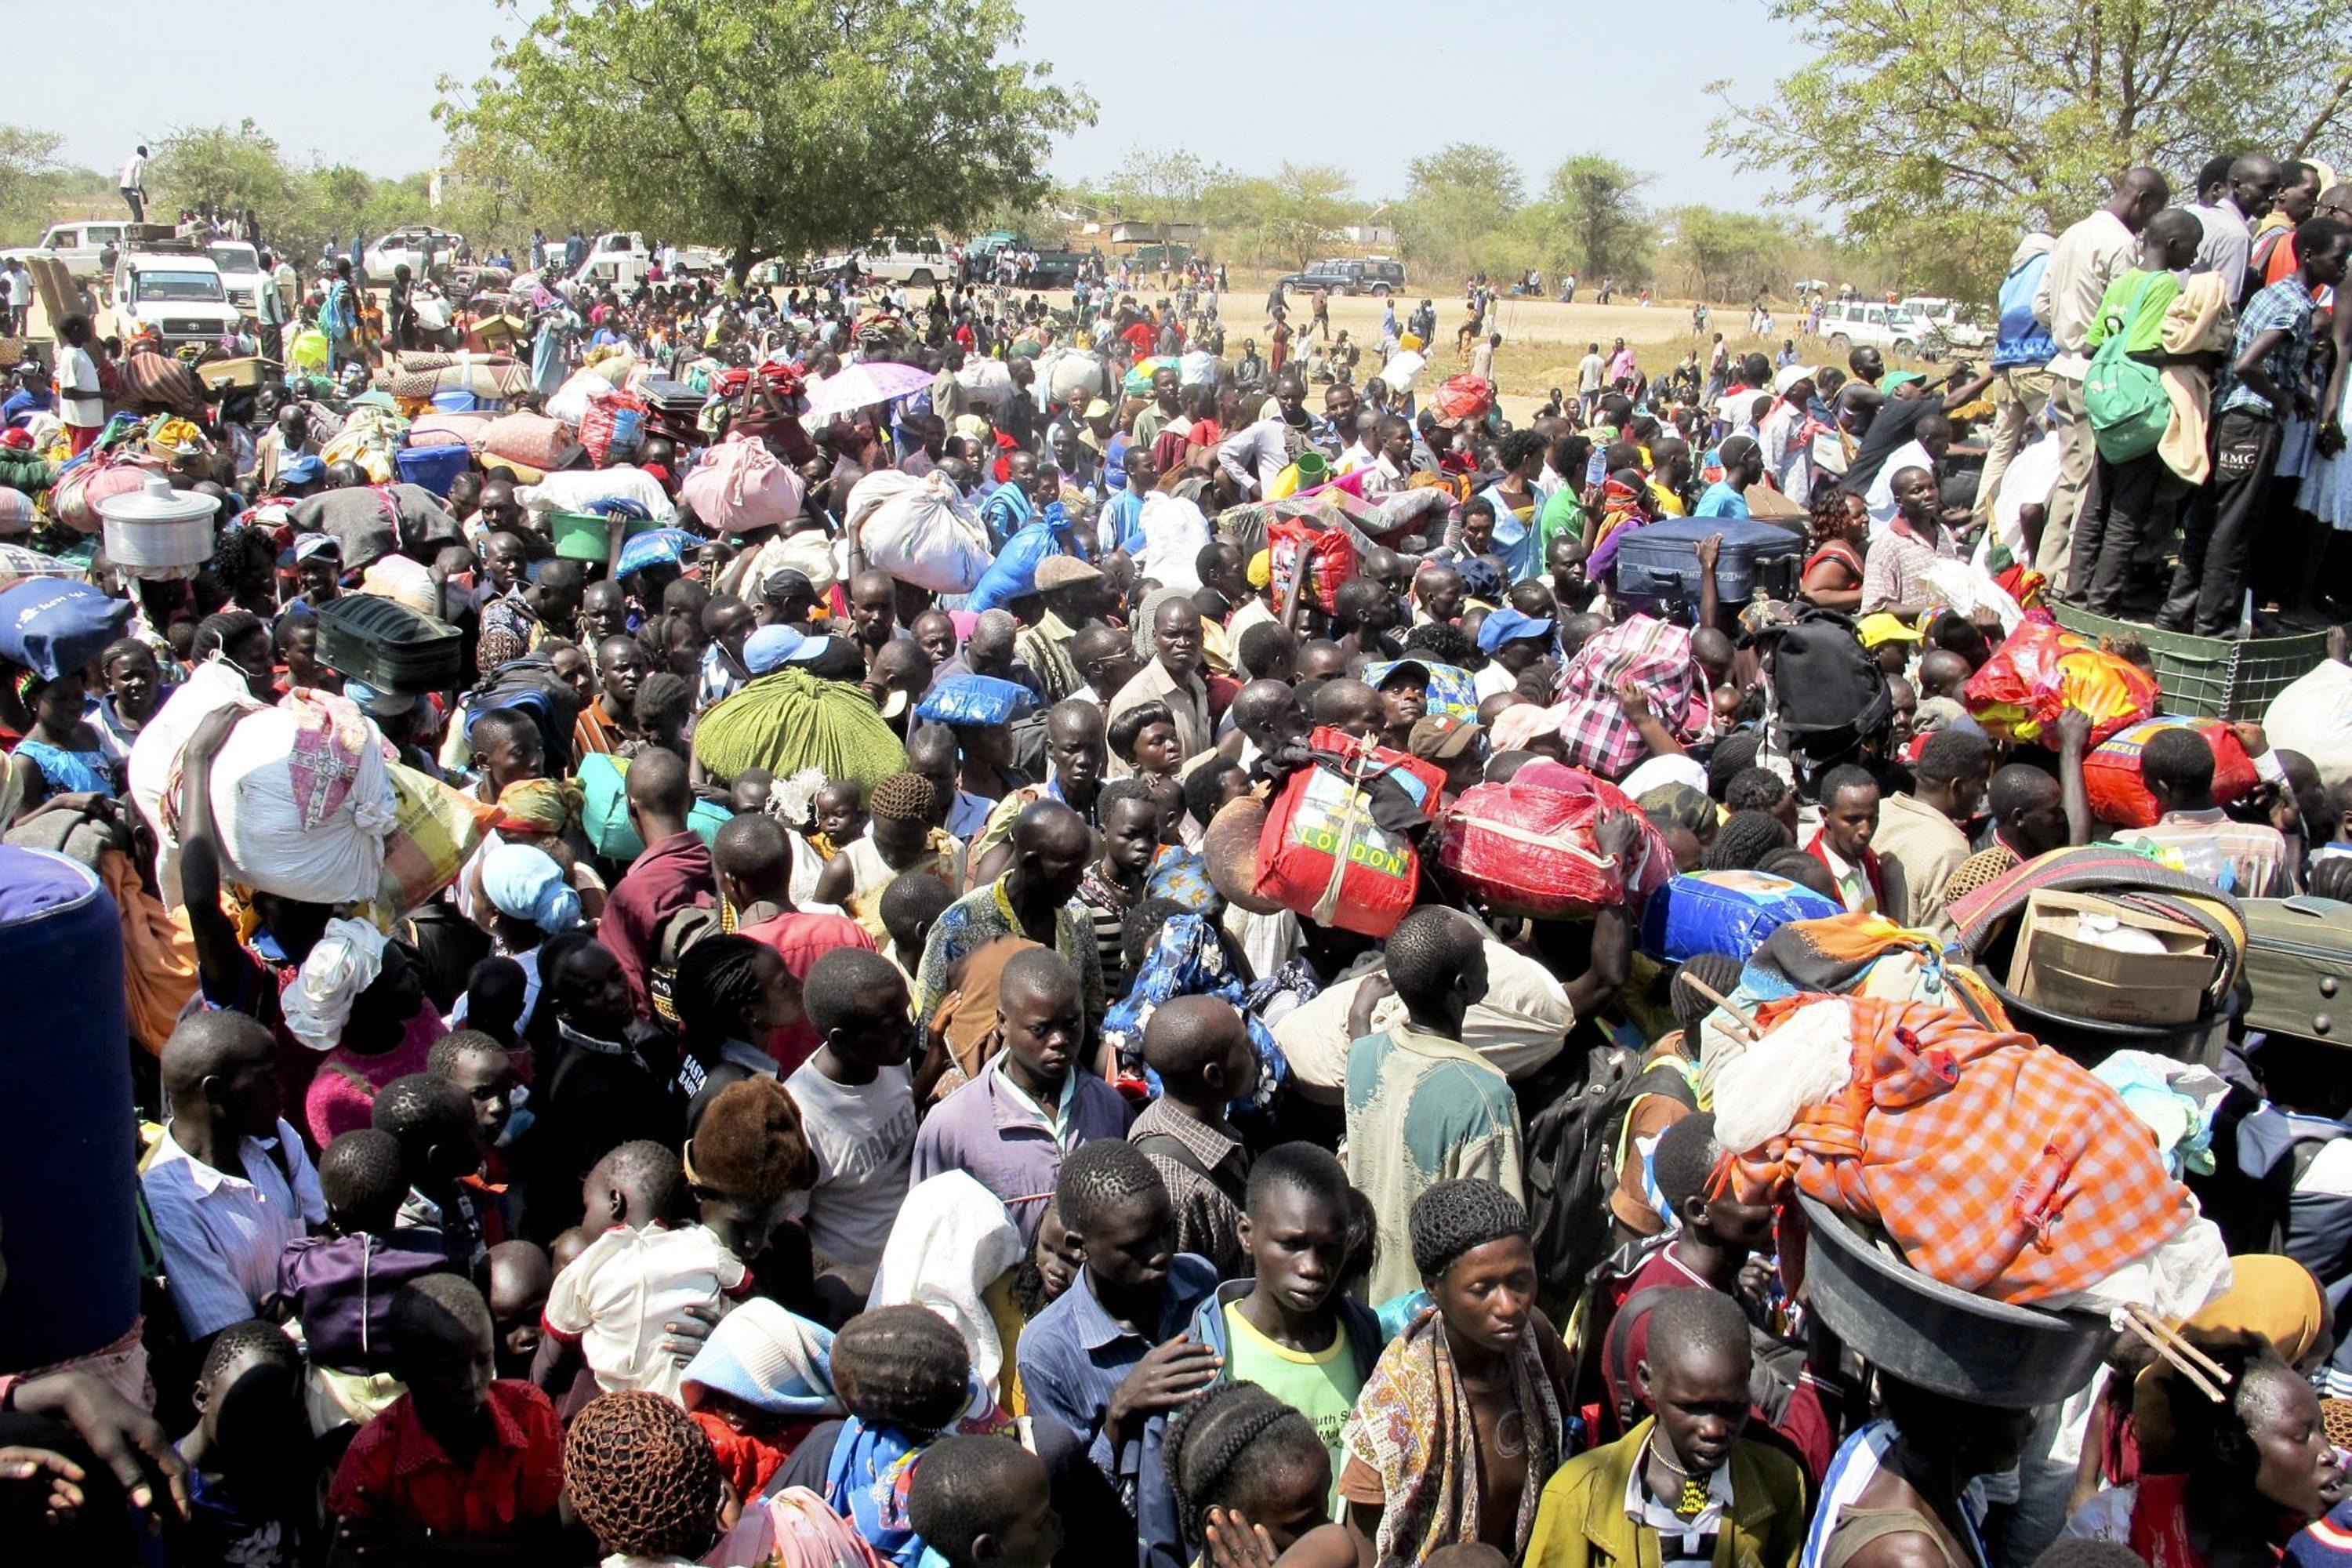 Civilians seek protection at UNMISS compound after fighting in Juba